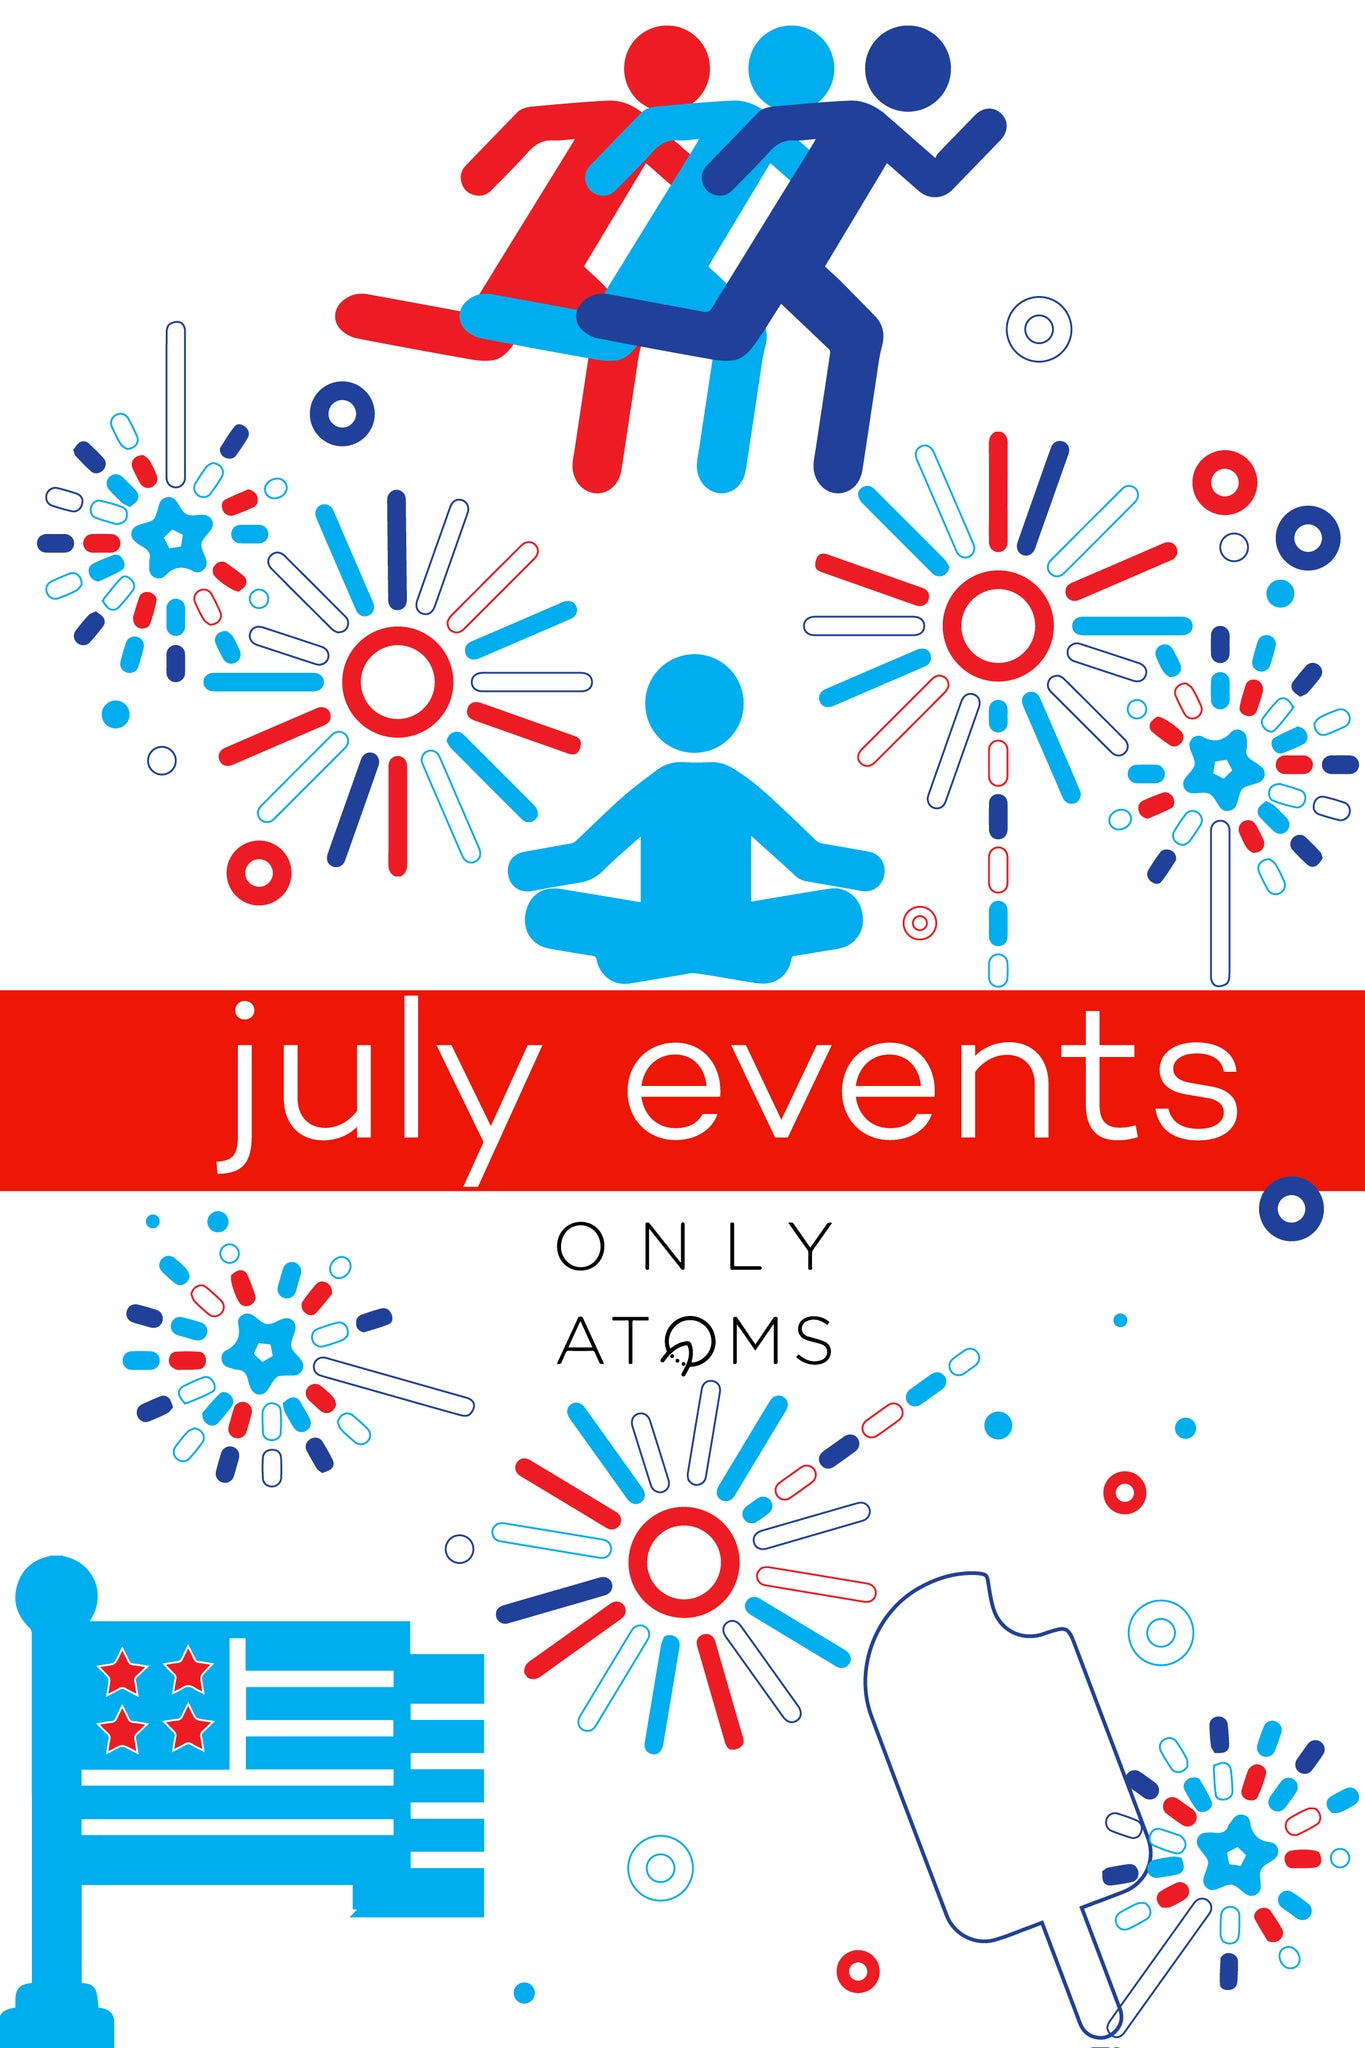 America's birthday seems to have inspired a wave of FREEdom everywhere this month! From FREE fitness and dance classes, to outdoor movies all over the city, this is summer at its peak.   link to June Events[many still happening]: https://onlyatoms.com/blogs/cool-running-blog-the-lab/118089221-fun-fitness-and-wellness-events-in-nyc-this-june  Underwear Run, Friday before NYC TRI  Coffee Run w/ Solfire  Kayaking in Brooklyn Bridge Park, Thursdays 5:30pm-6:45pm, Saturdays & Sundays 10:00am-3:00pm through September  FREE kayaking in Brooklyn Bridge Park's Pier 2. Sundays there is even kayak polo. Sign up for Sunday kayak polo here to ensure you get a spot.  Yoga Tuesdays, Tuesdays 7:30am-8:30am through July 19th  FREE yoga classes in Stuyvesant Square's North Lawn lalala  Meditation Thursdays, Thursdays 6:30pm-7:30pm through July 21st  FREE guided meditation class in Stuyvesant Square's North Lawn lalala   One Night Only Dance Party, June 30th 9:00pm-July 1st 1:00am  What better way to ring in July than dancing the night away at a FREE dance party at McCarren Park Hotel and Pool!    Learn to Tango Nights, Sundays 6:00pm-9:00pm through July 31st  FREE tango lessons with a live DJ?! Yes. Class is led by certified dance instructor Esmeralda from 6:00-6:45pm and the dancing and music continues until 9:00pm. Also in Stuyvesant Square  Summer on the Hudson: Everybody Tango!, Thursdays 6:30pm-9:30pm through August  More FREE tango lessons, brought to you by Strictly Tango NYC.   With all these fun running, yoga, dancing, and film events, July is going to be an awesome month! Come have fun in the sun with us at all these great summer activities.